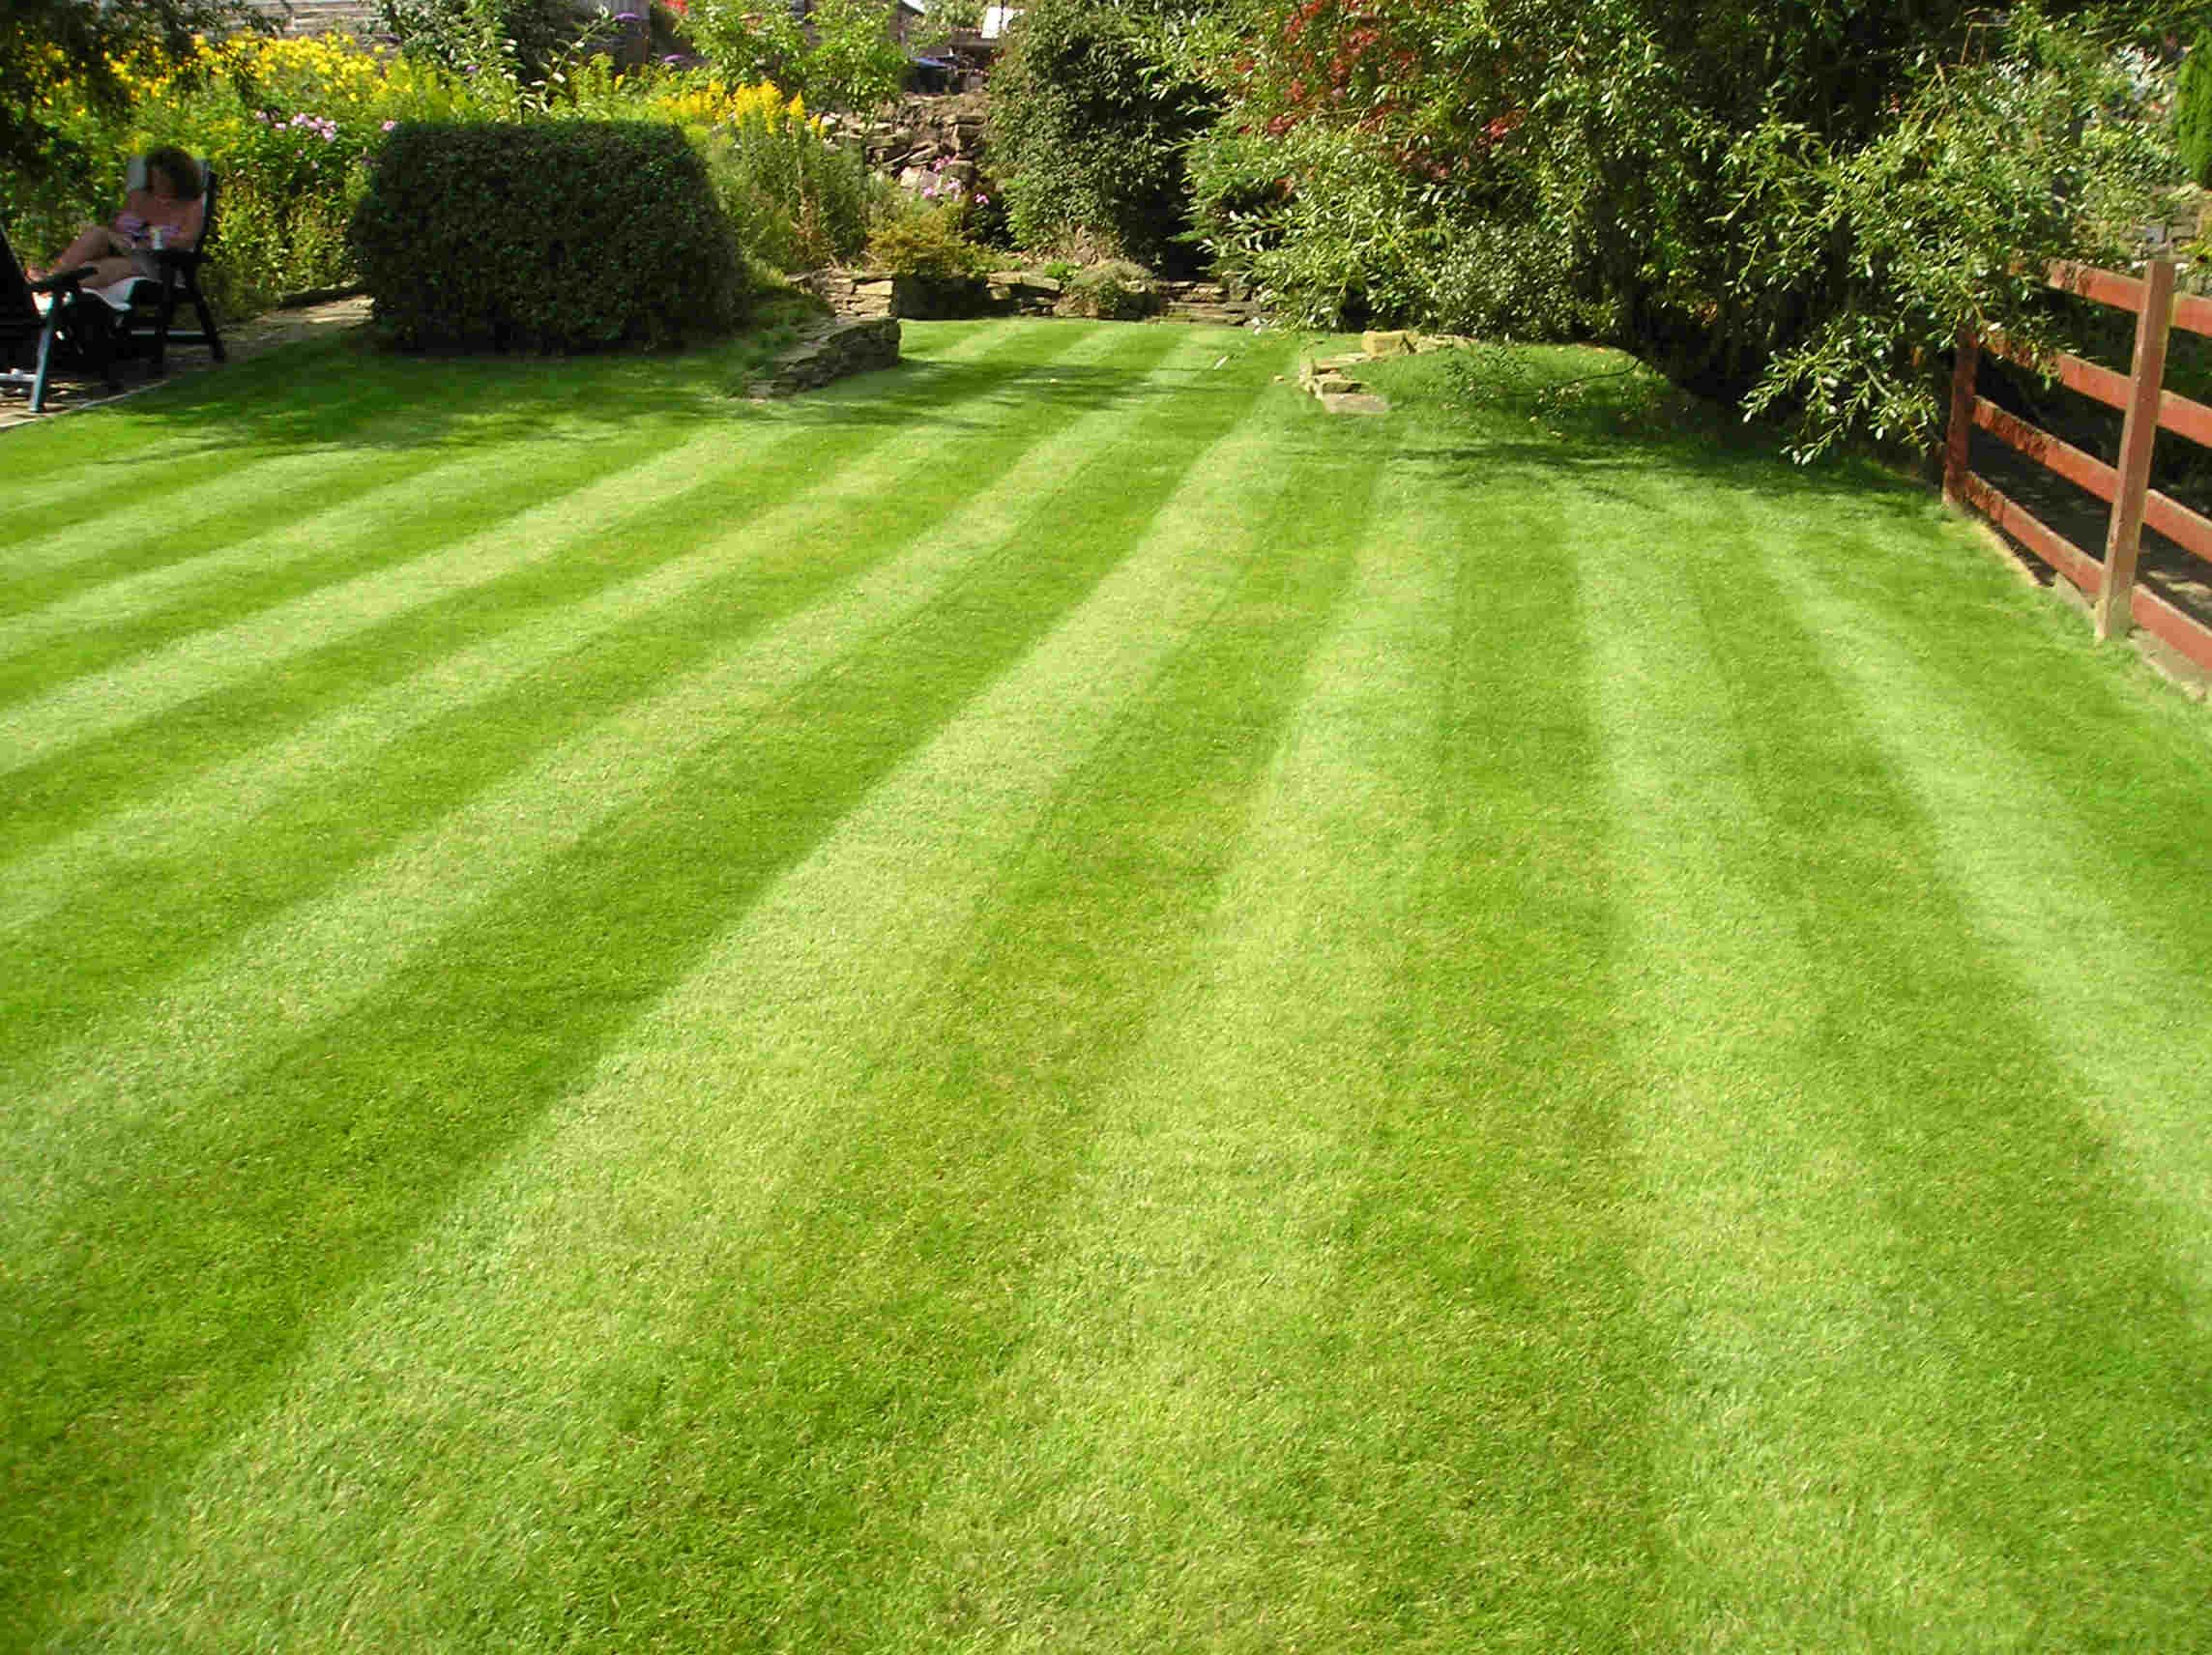 There Is Something About A Fresh Mowed Lawn With Nice